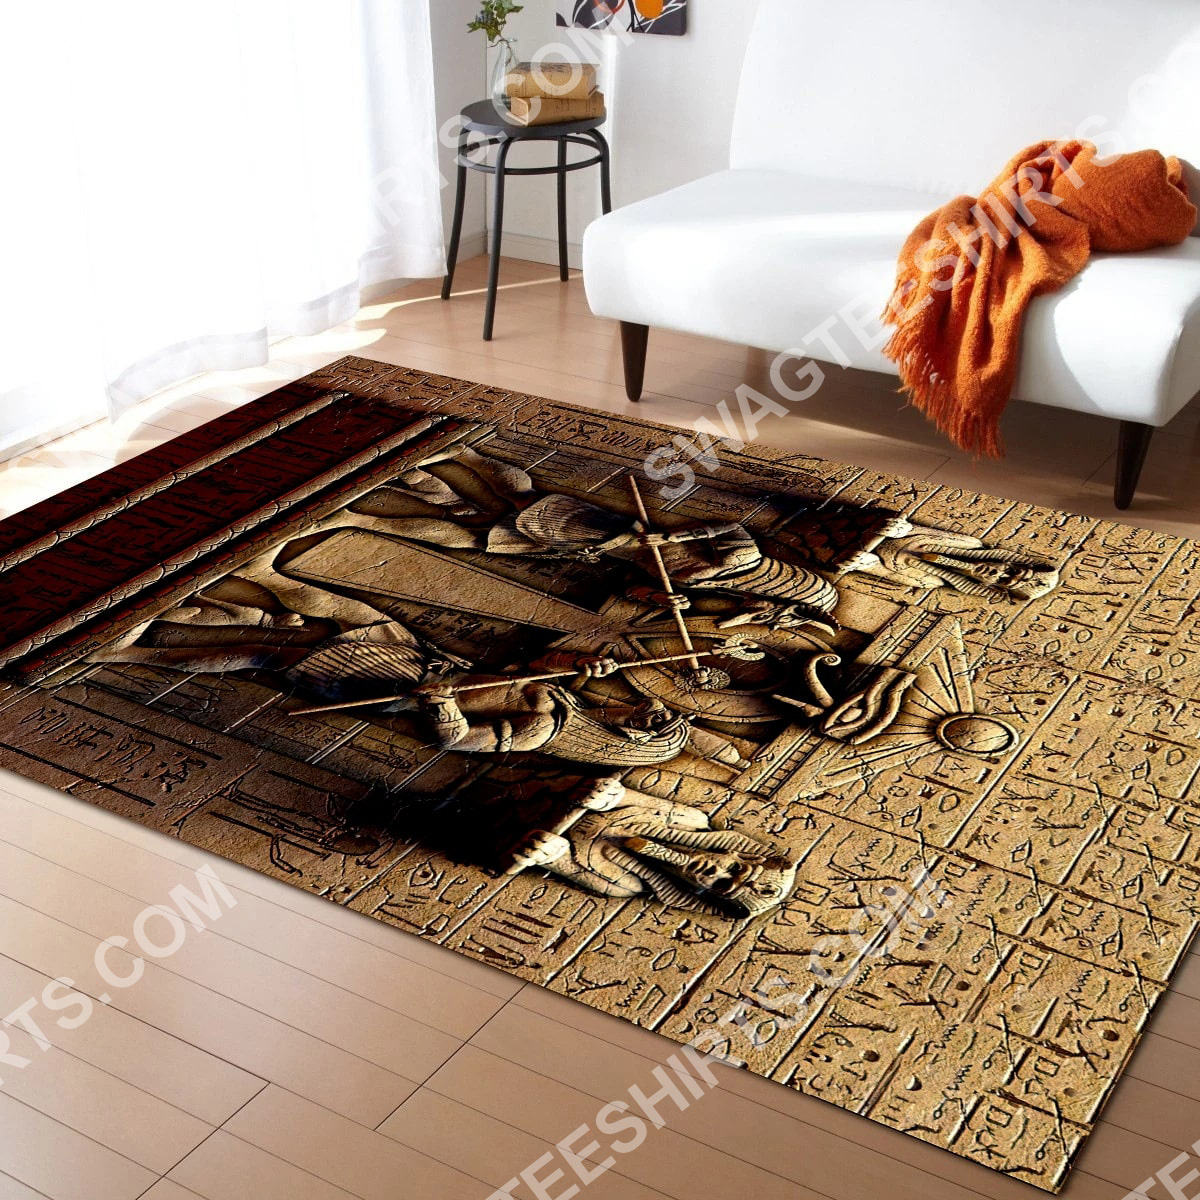 anubis egyptian civilization culture all over printed rug 5(1)